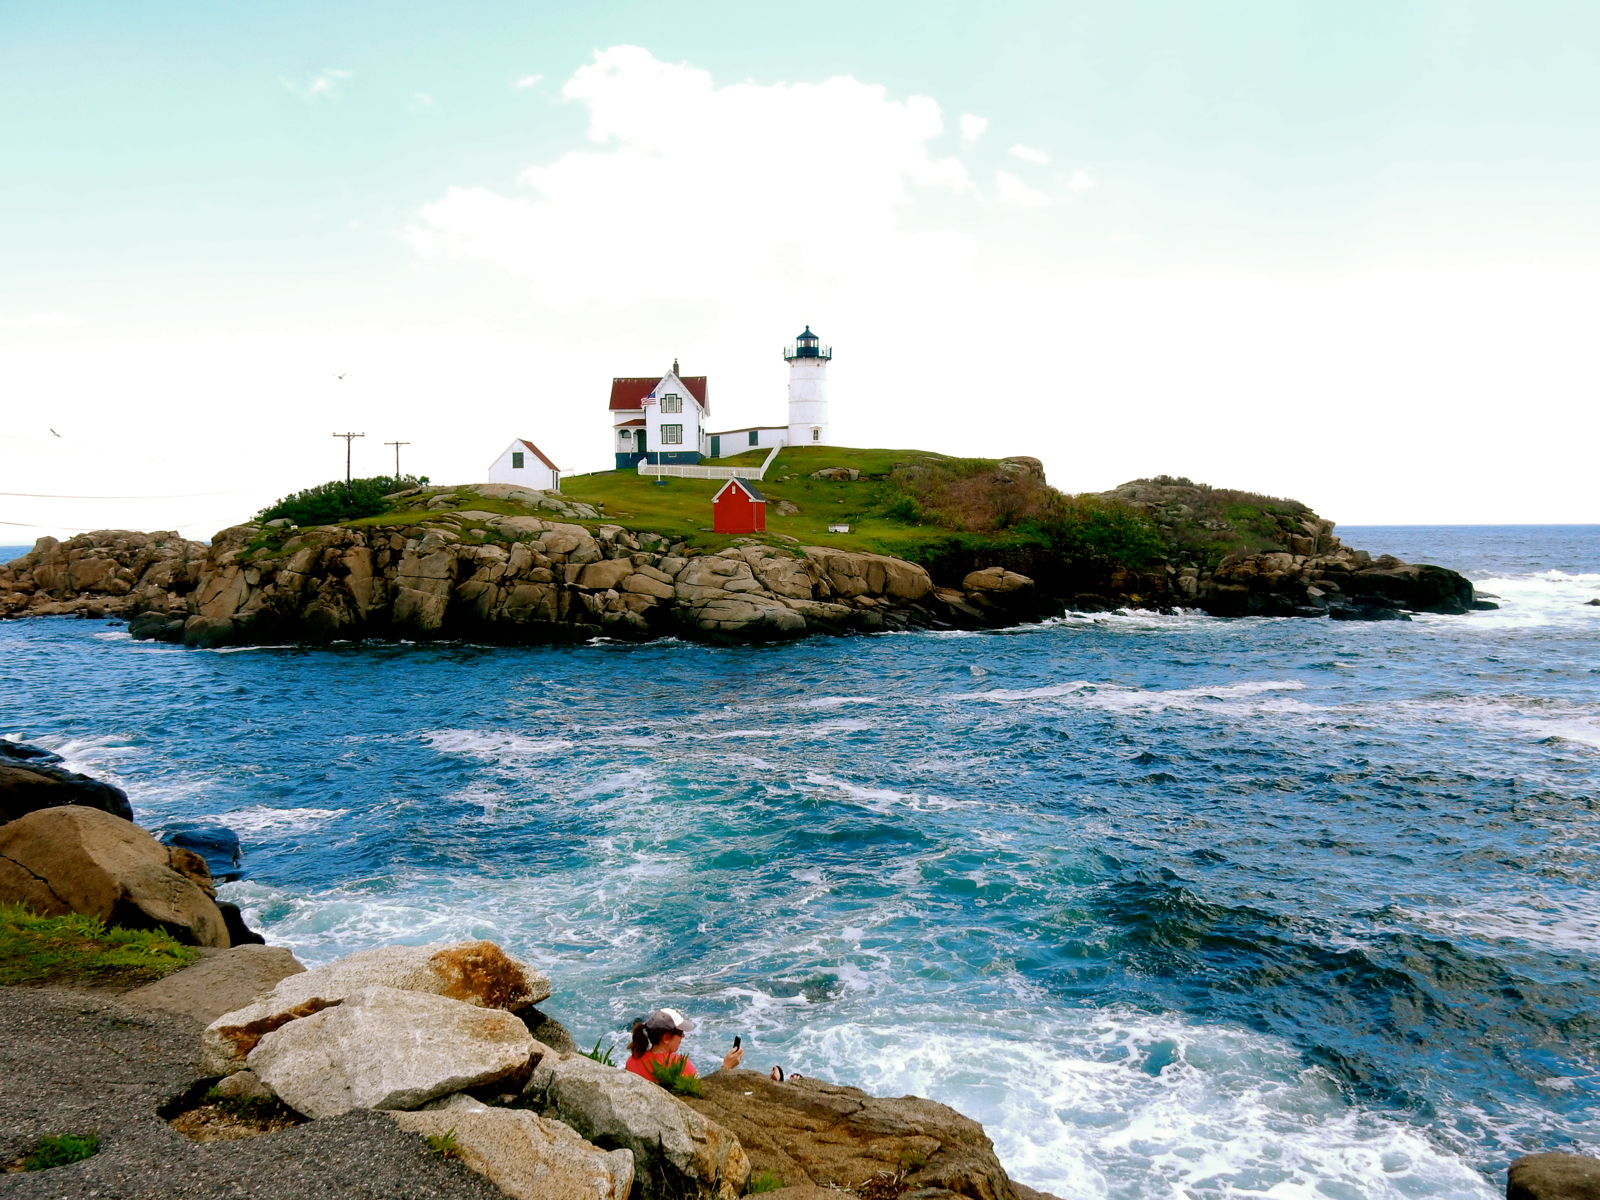 Welcome to The Maine Coast: Kittery, York, Ogunquit